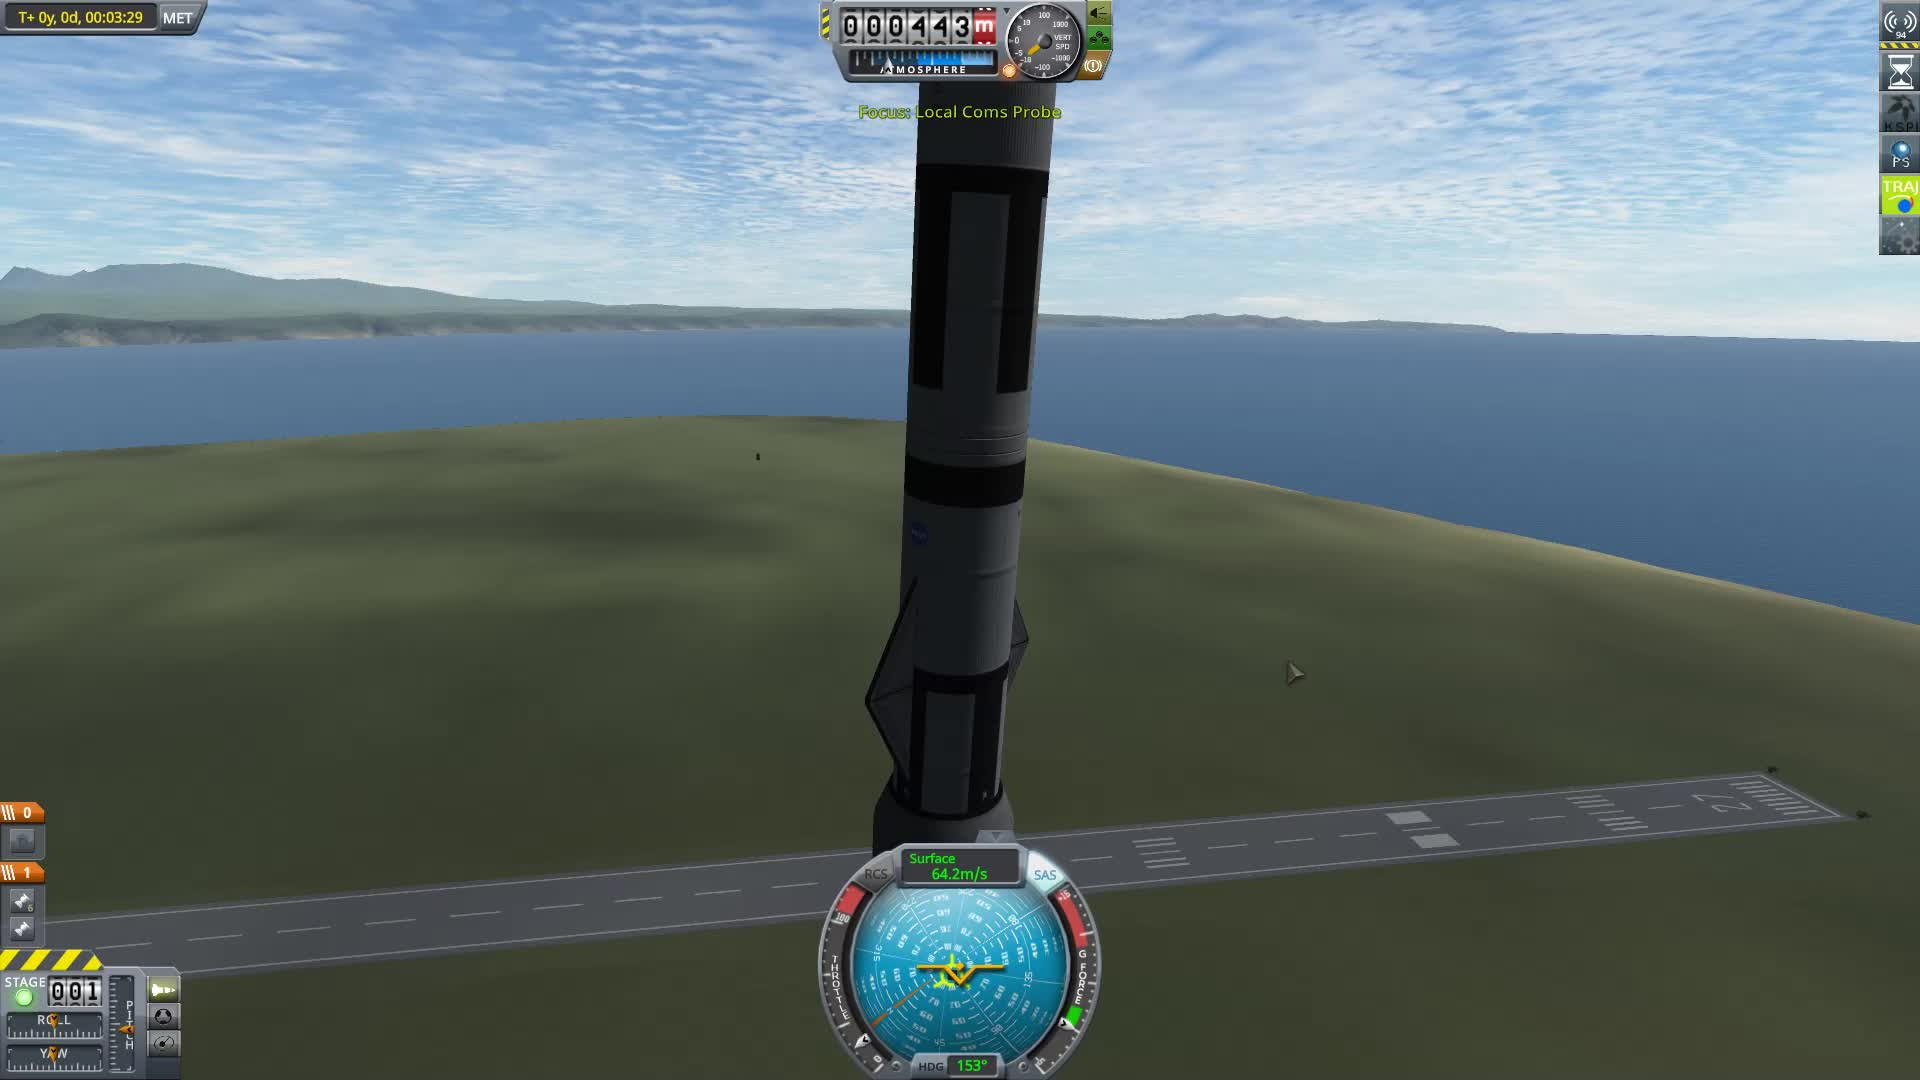 kerbalspaceprogram, Kerbal Space Program 2018.10.27 - 10.15.16.06.DVR Trim GIFs